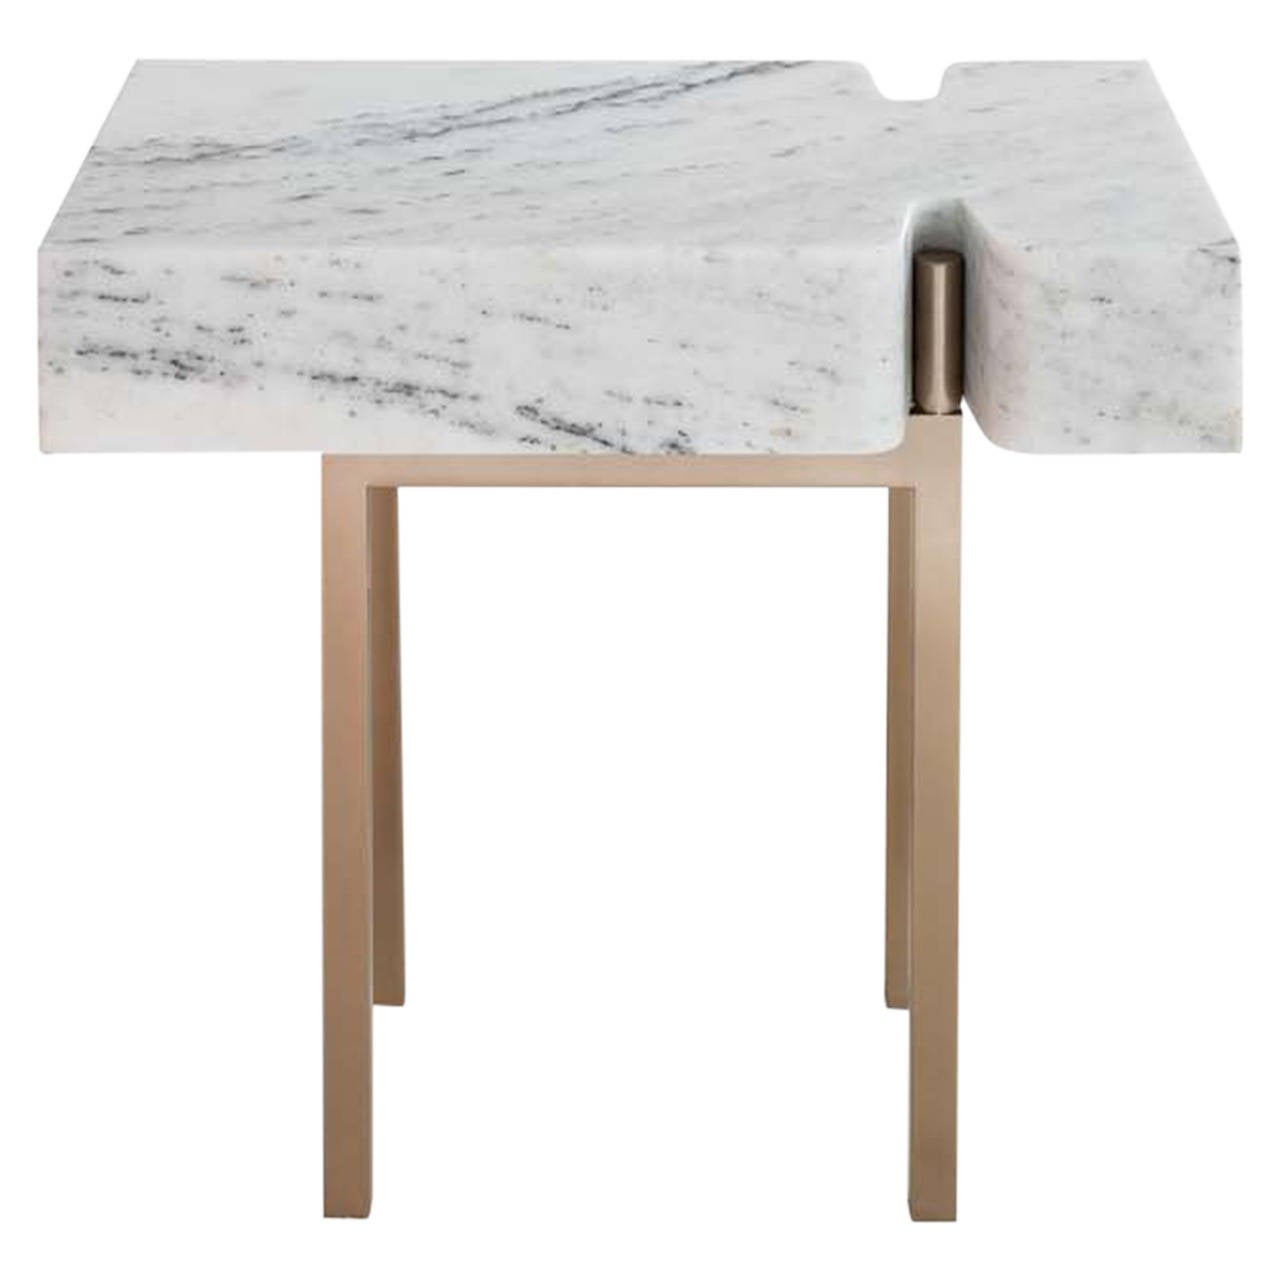 Terranova side table or end table with hewn marble top and bronze base for sale